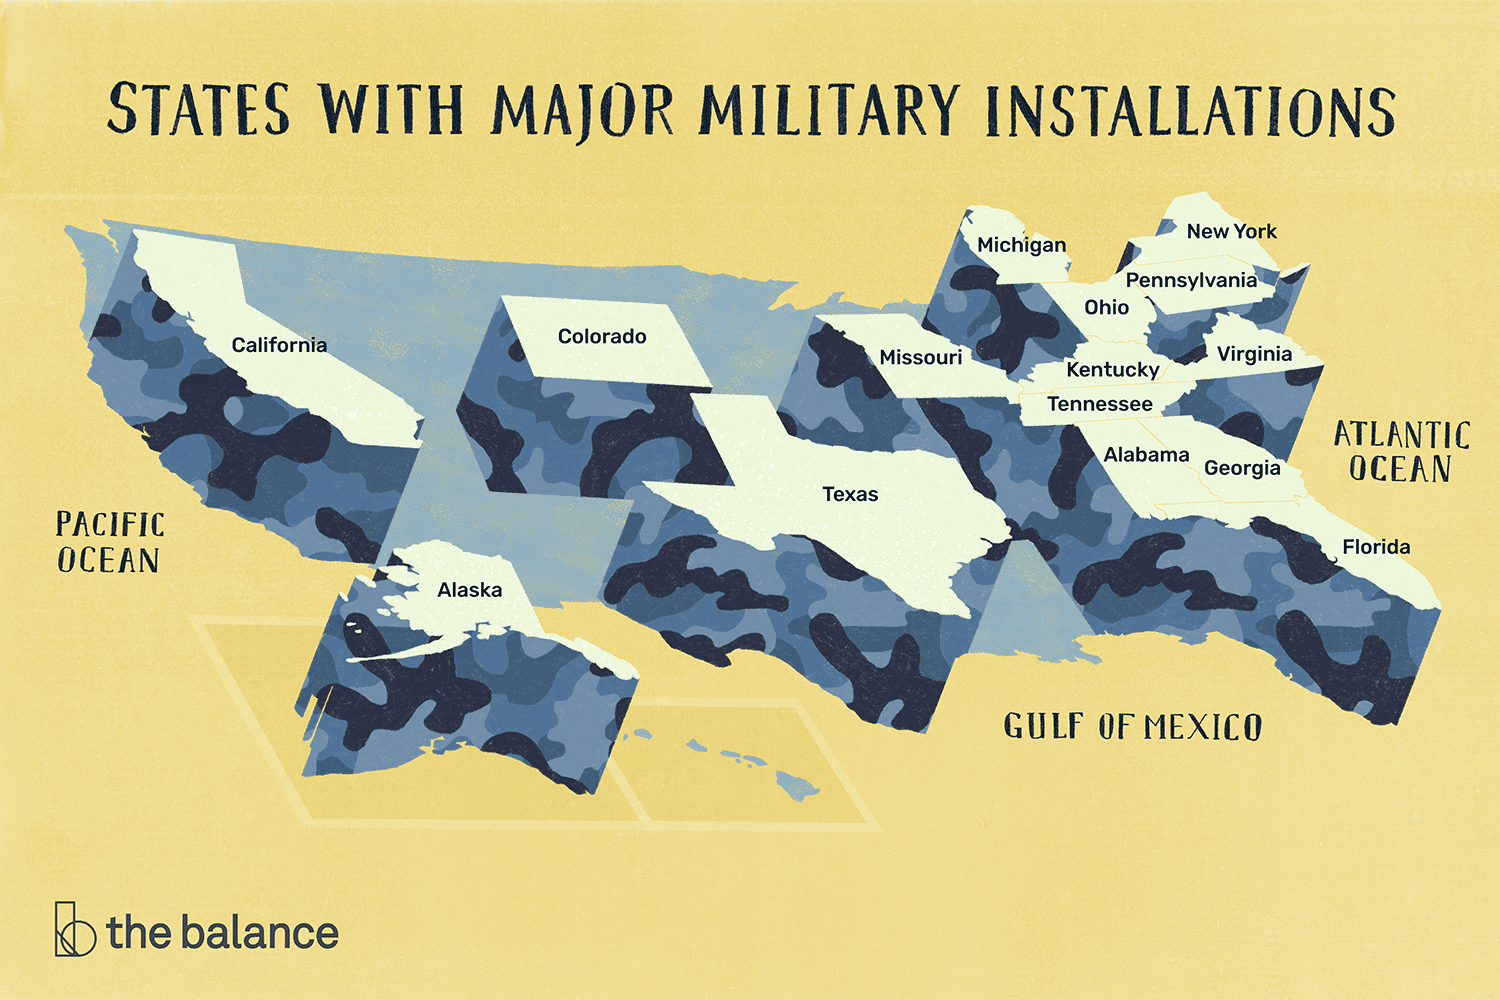 Major U.S. Military Bases and Installations